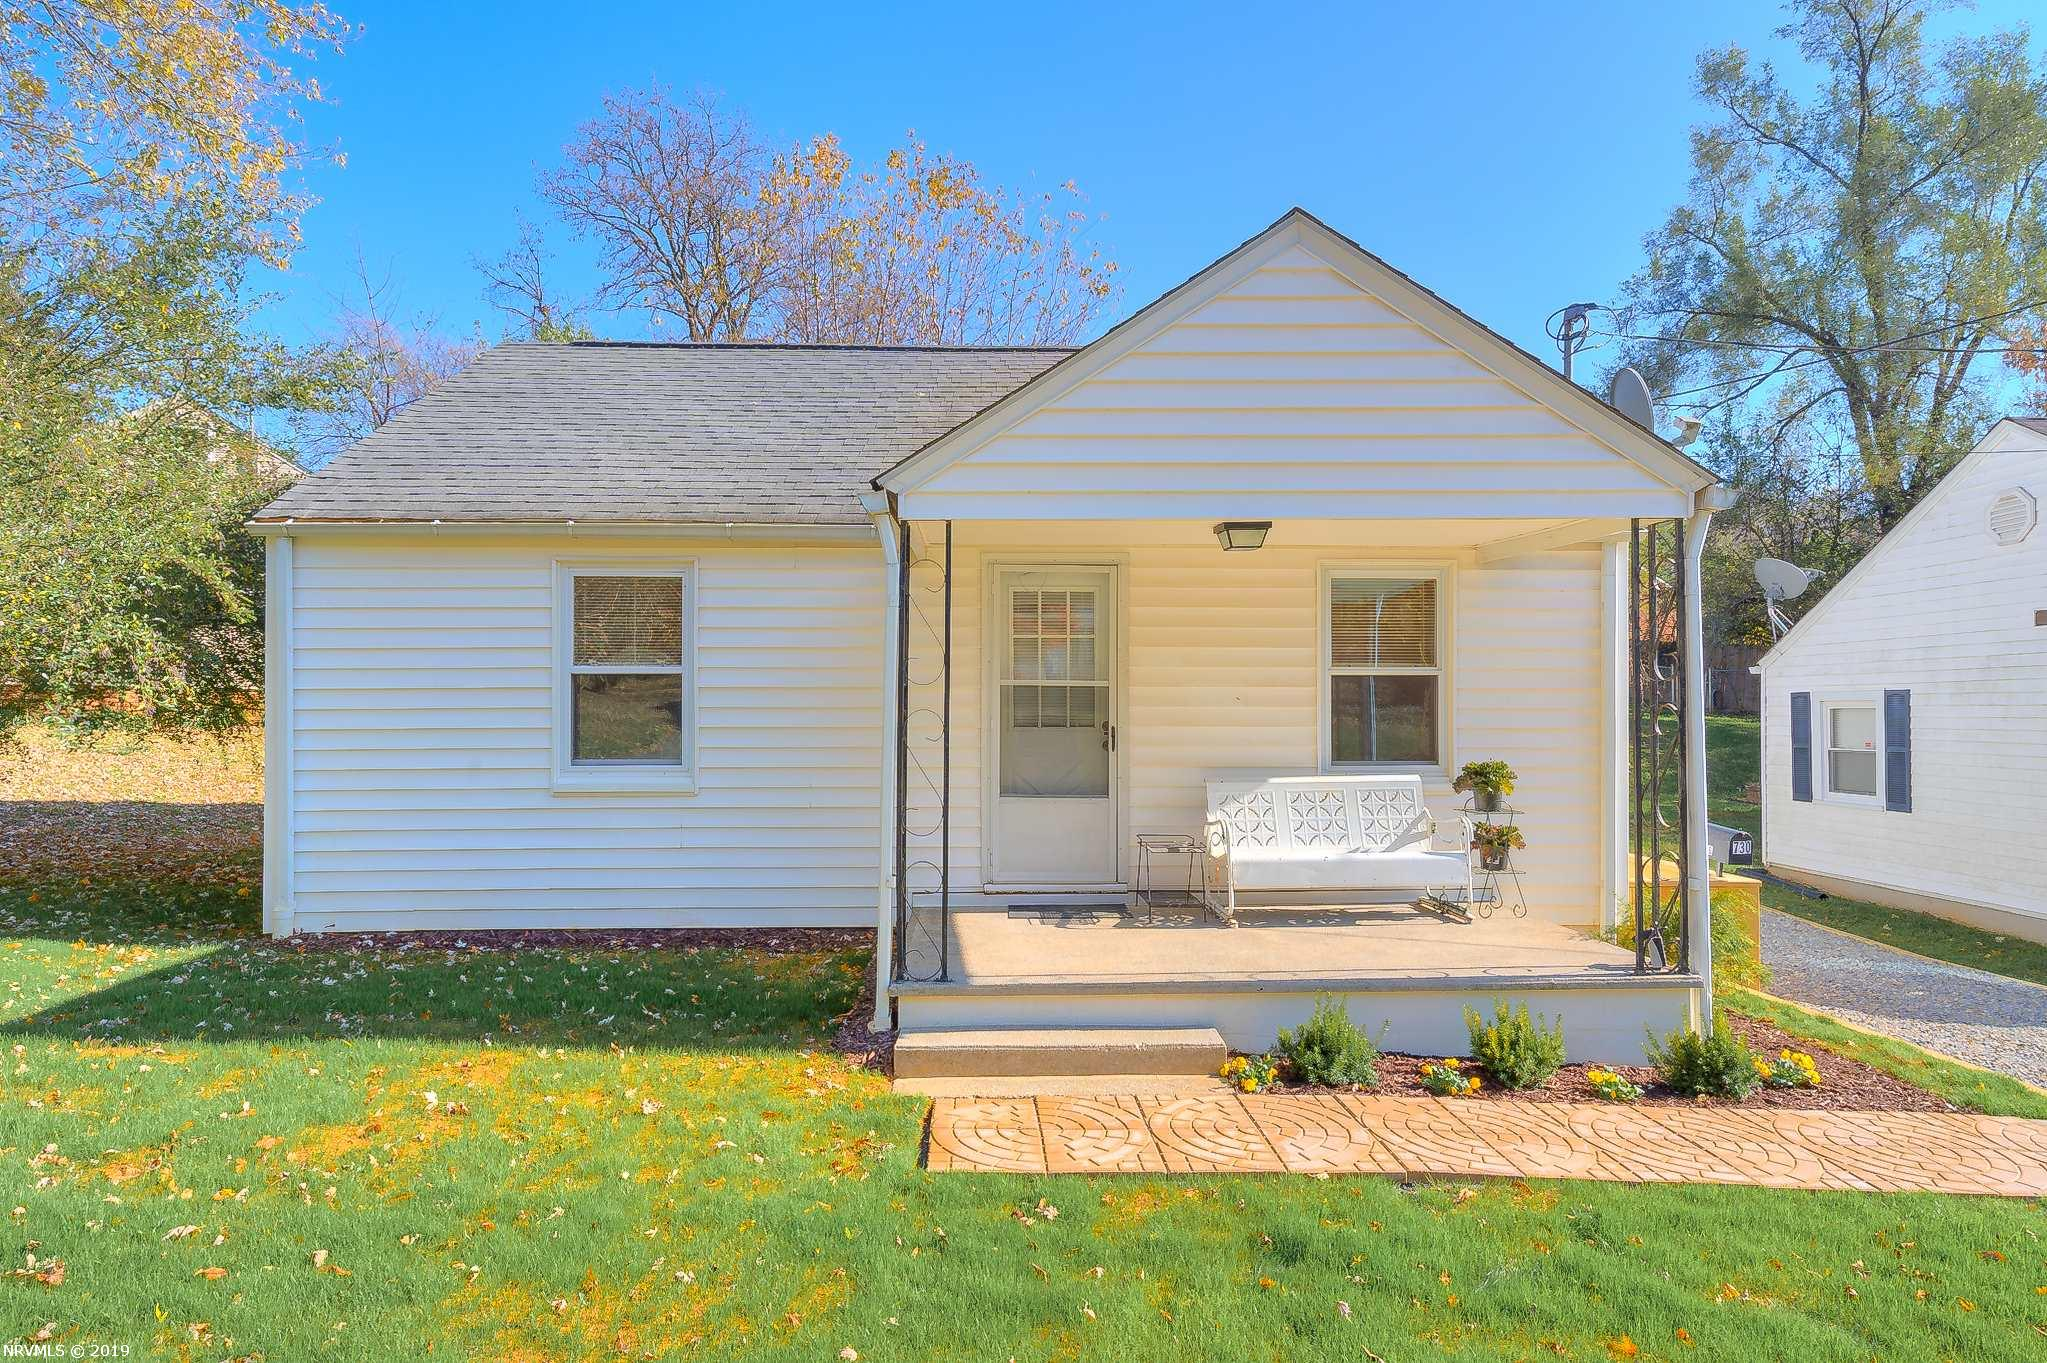 The cute cottage is a wonderful starter or retirement space, and is move in ready! Fresh paint and polished hardwoods throughout. Updated bathroom. Insulated replacement windows. New HVAC. Newer appliances, including a brand new refrigerator. Washer and Dryer on the main level on a sunny, fully enclosed back sun porch. Brand new graveled drive and landscaping. The large covered front porch is the perfect place for relaxing with friends and neighbors! Cozy living room and bedrooms are all bright with lots of natural light, hardwood floors, and fresh paint. The kitchen is roomy for this size cottage, and you will definitely enjoy the sunny, fully enclosed back porch.  The basement has outside access, with brand new steps.  It is dry, has tons of storage space, and plenty of room for workspace too!  This home has been prepped for new owners with great care- a must see!!